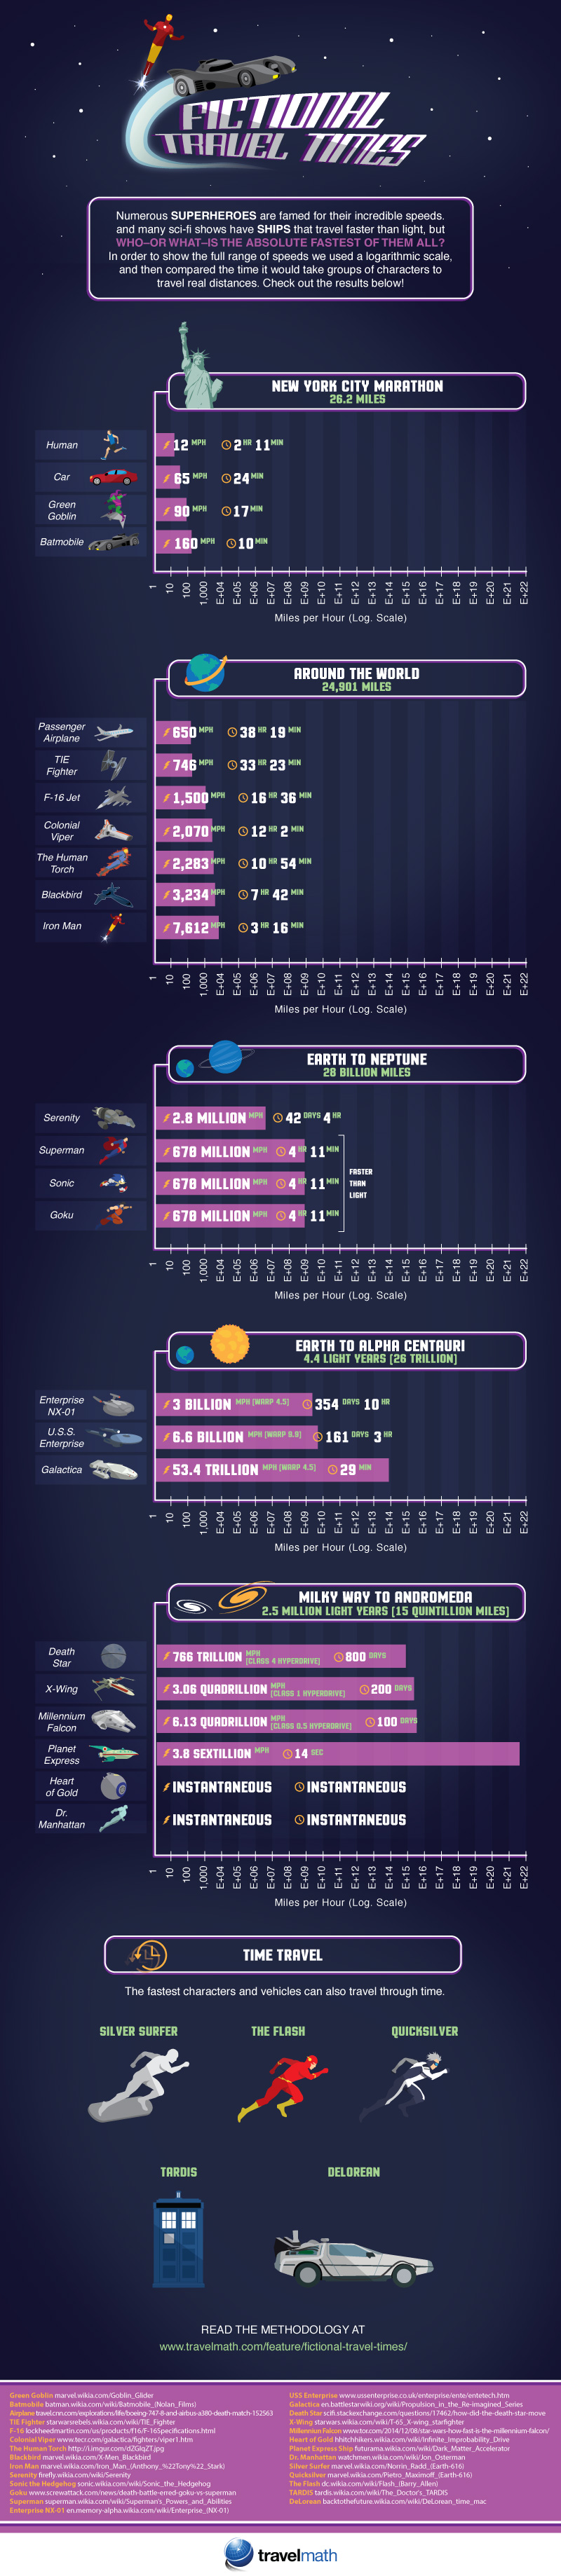 Inter-Galactic Travel? Map Your Speed as Compared to Superheroes! - Infographic